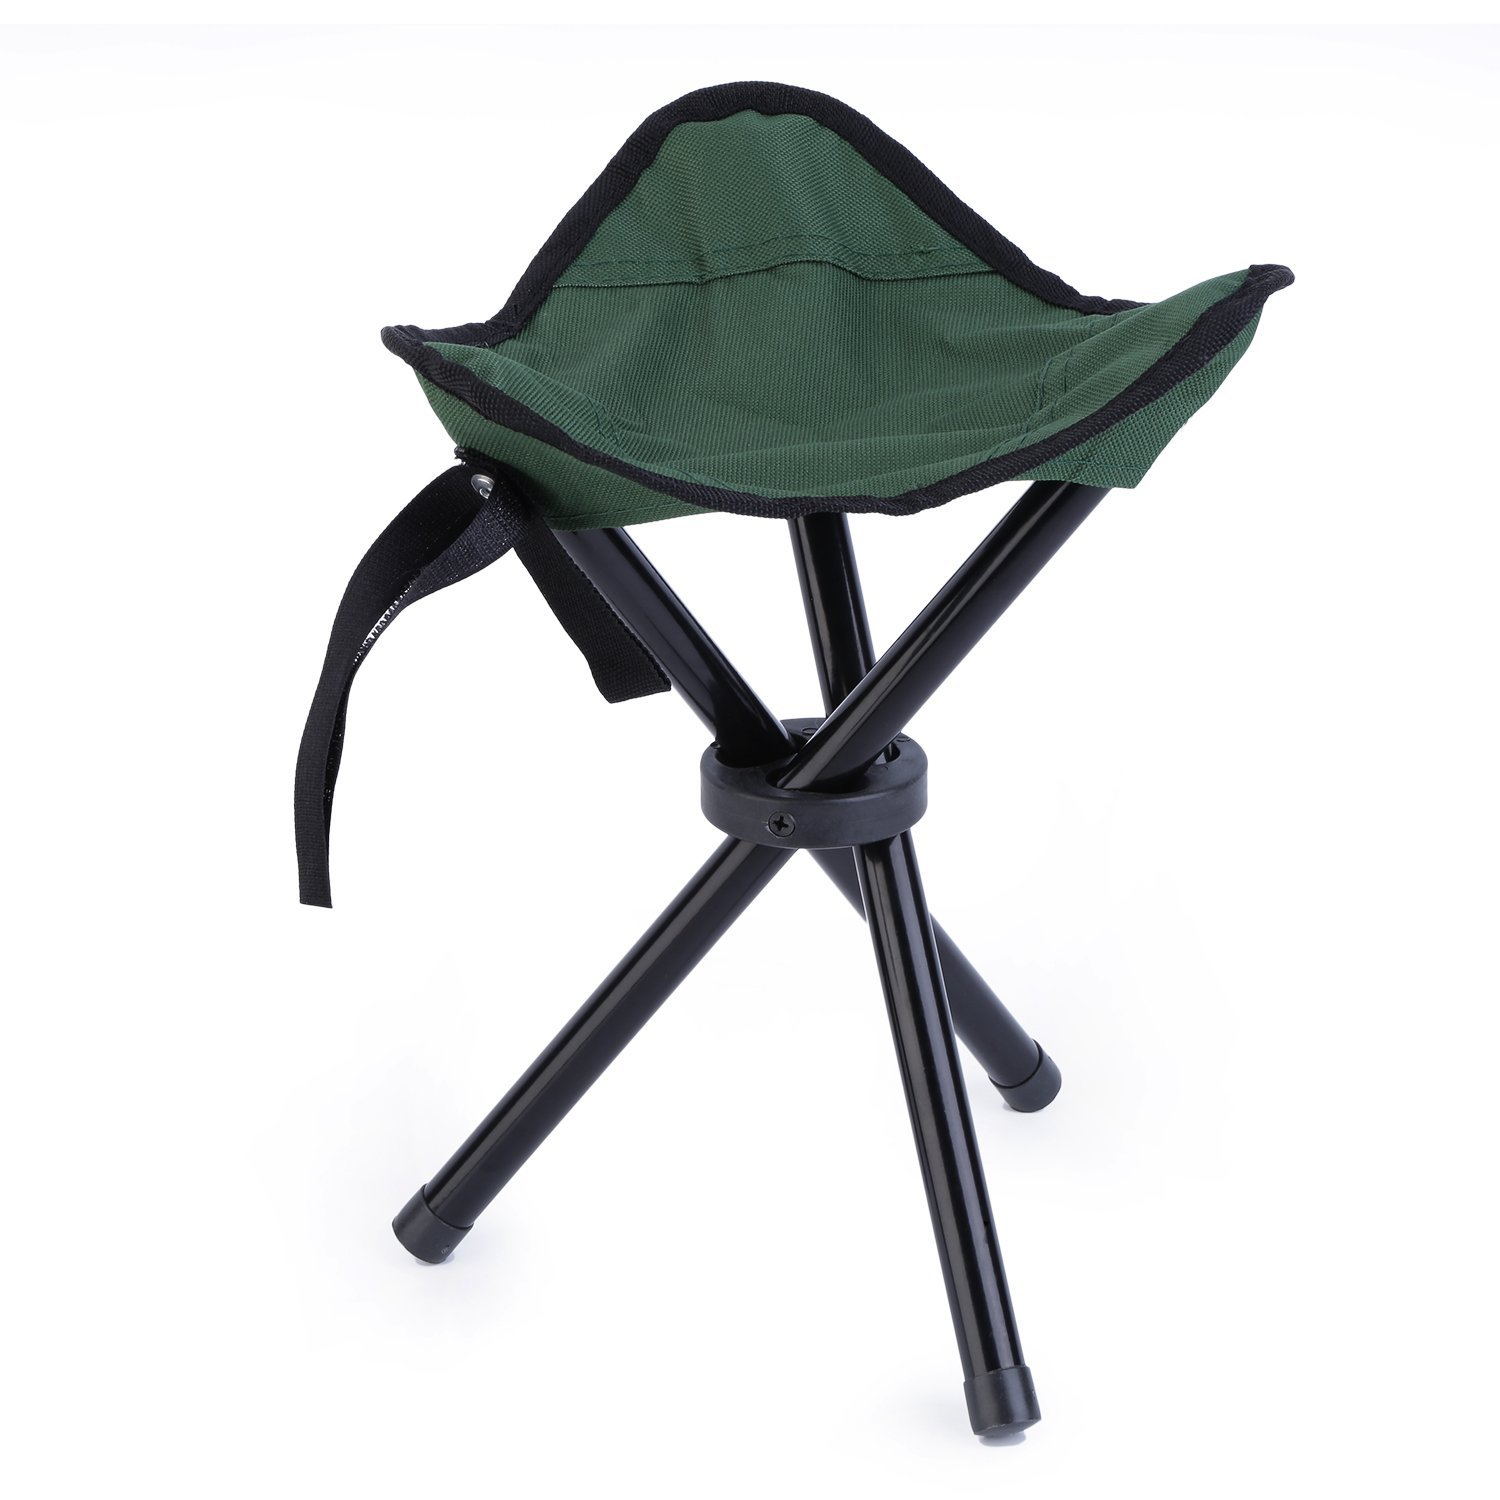 Pleasant Buy Outad Folding Hiking Backpacking Tripod Stool Camping Inzonedesignstudio Interior Chair Design Inzonedesignstudiocom